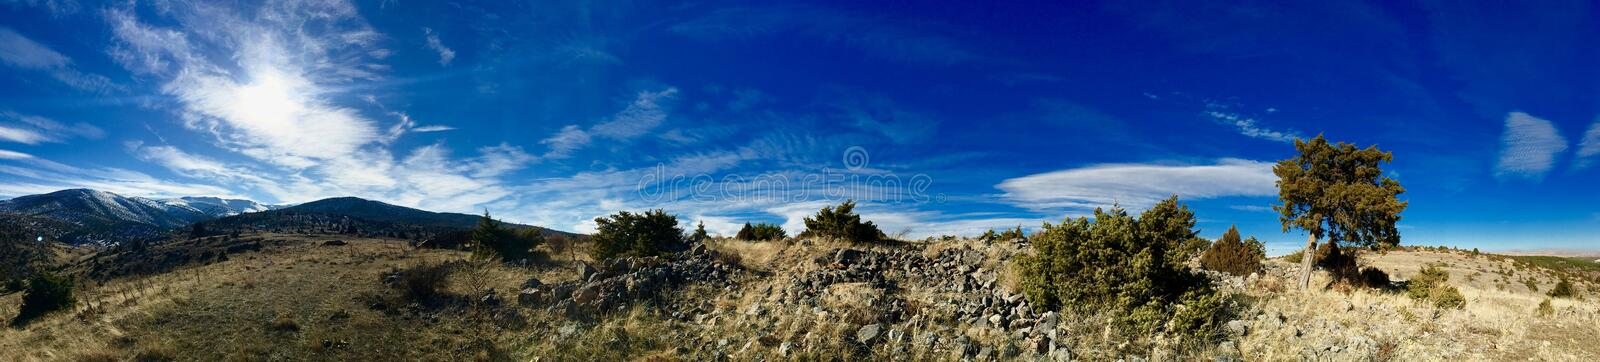 Mountain_and_clouds_panoramic стоковые фотографии rf